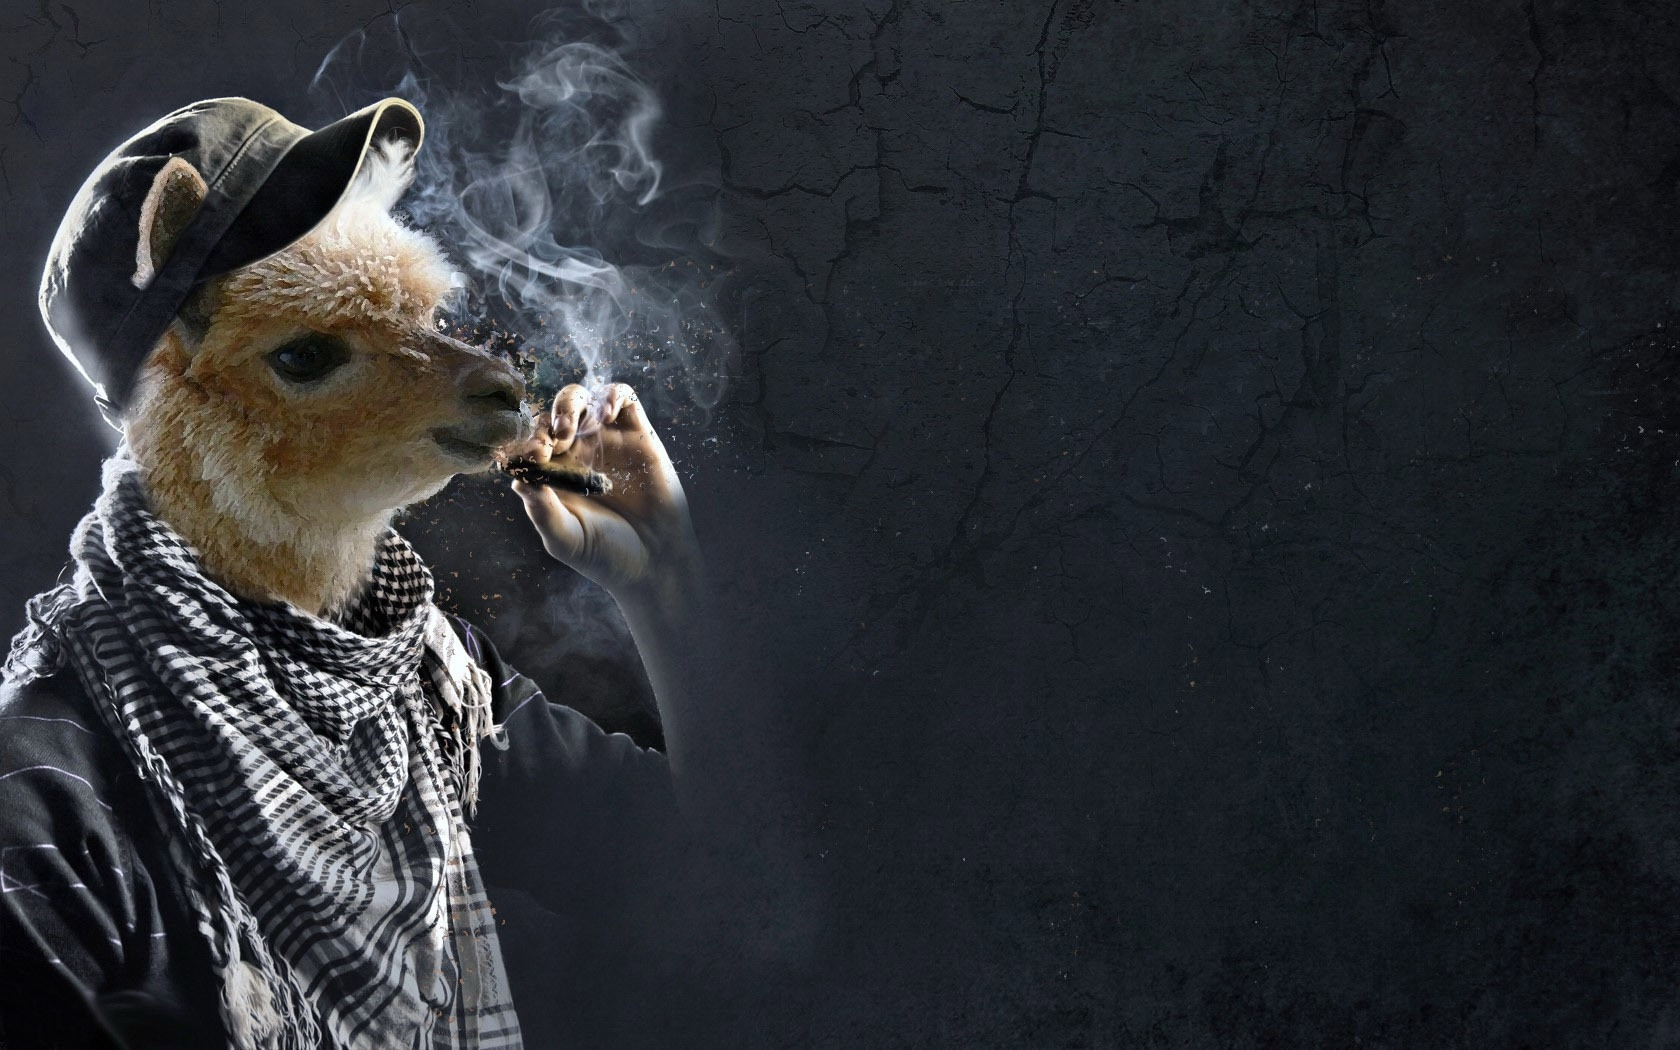 Llama Smoking Funny Wallpapers HD Desktop and Mobile Backgrounds 1680x1050